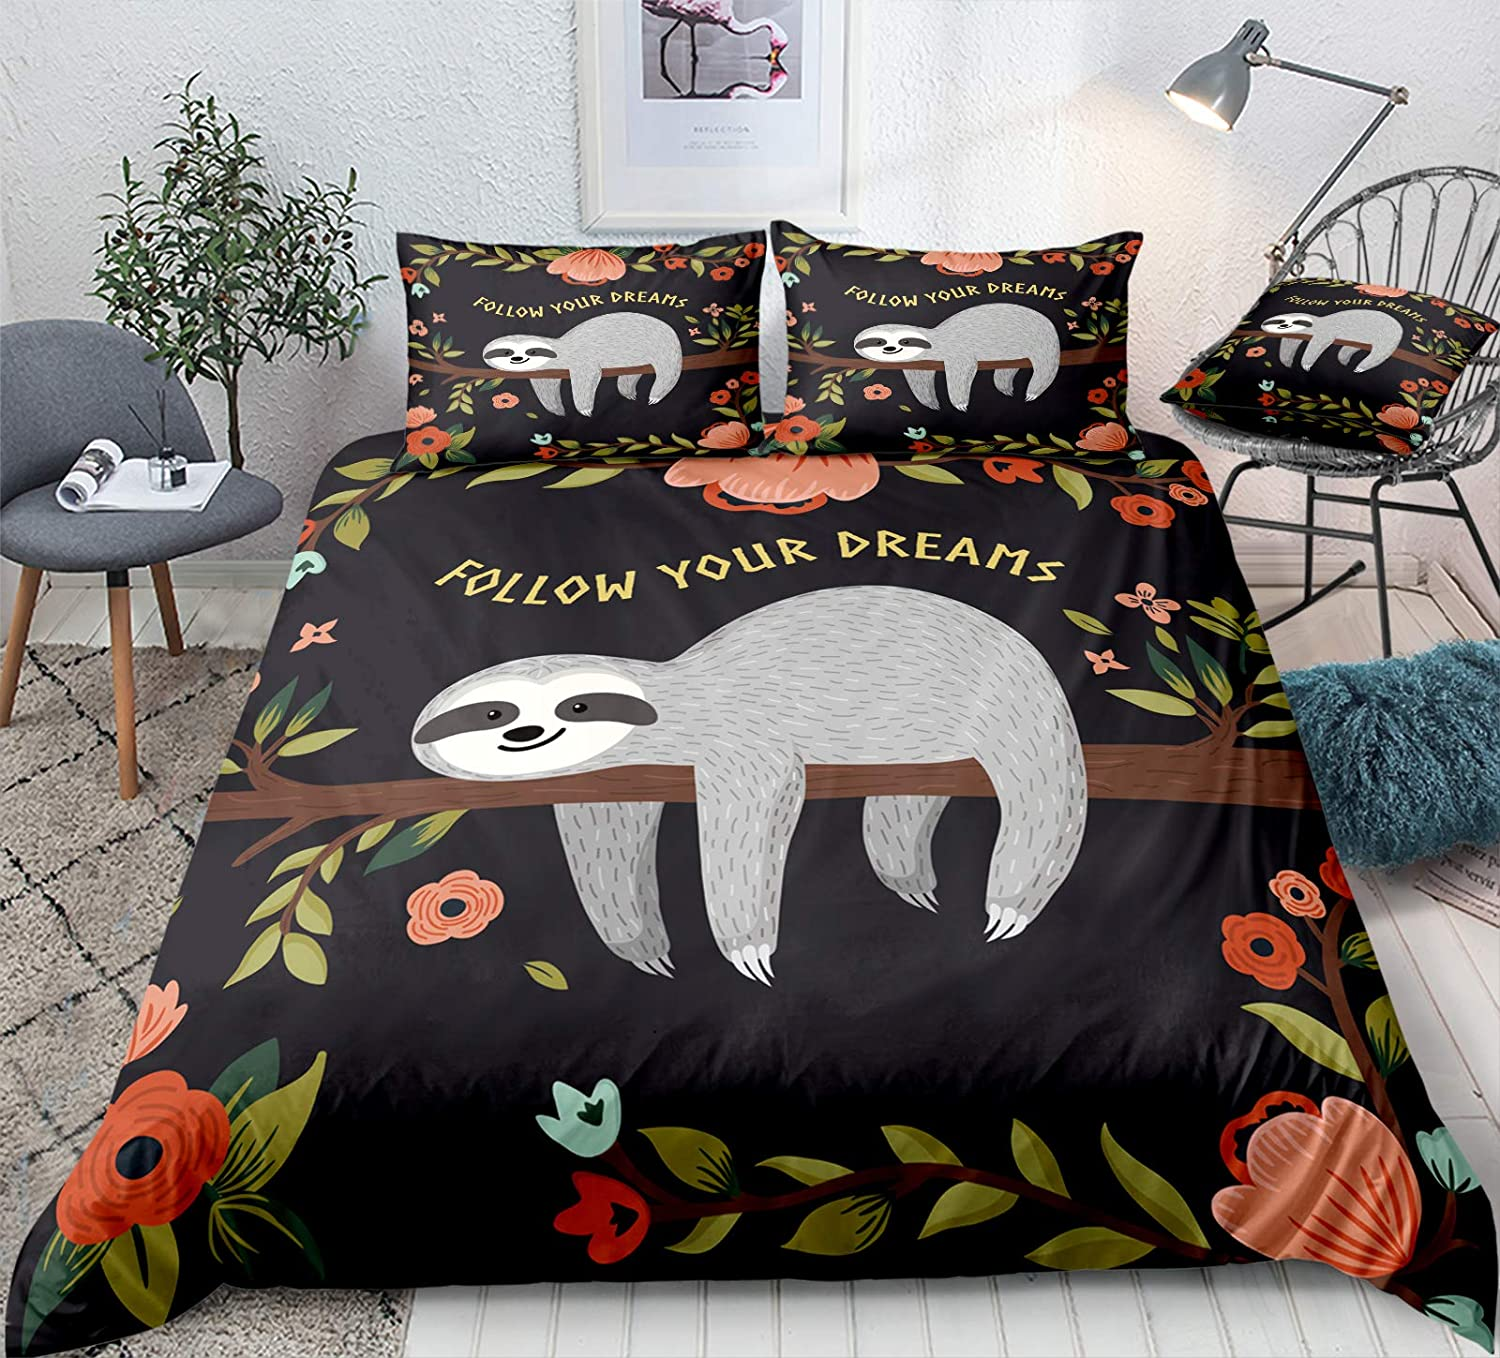 Floral Sloth Bedding Cartoon Flowers New Tampa Mall Shipping Free Set Duvet Cover